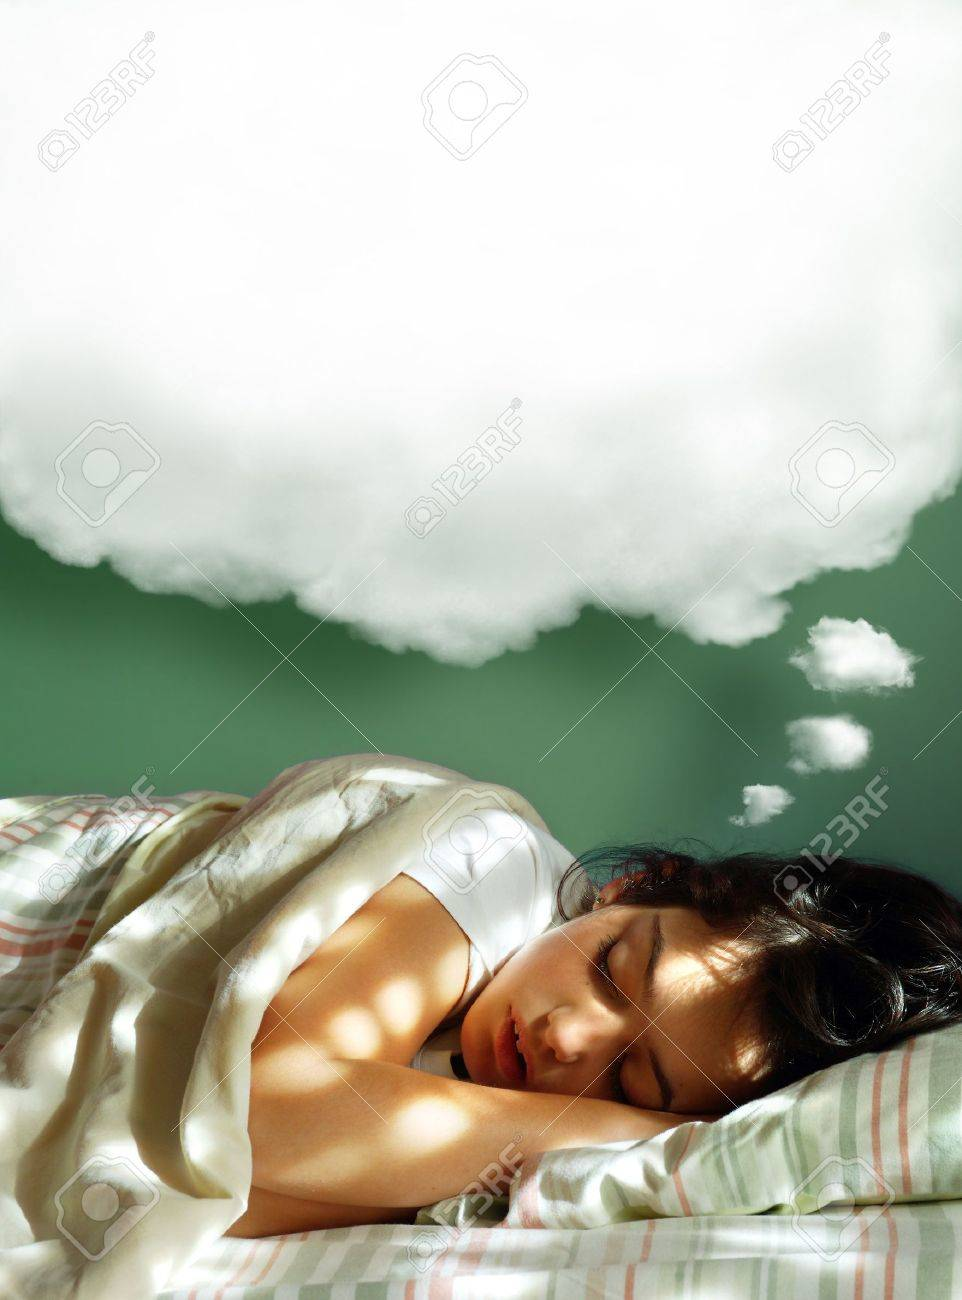 Young girl sleeping in her bed, with a dreaming fluffy balloon above her head Stock Photo - 9577375